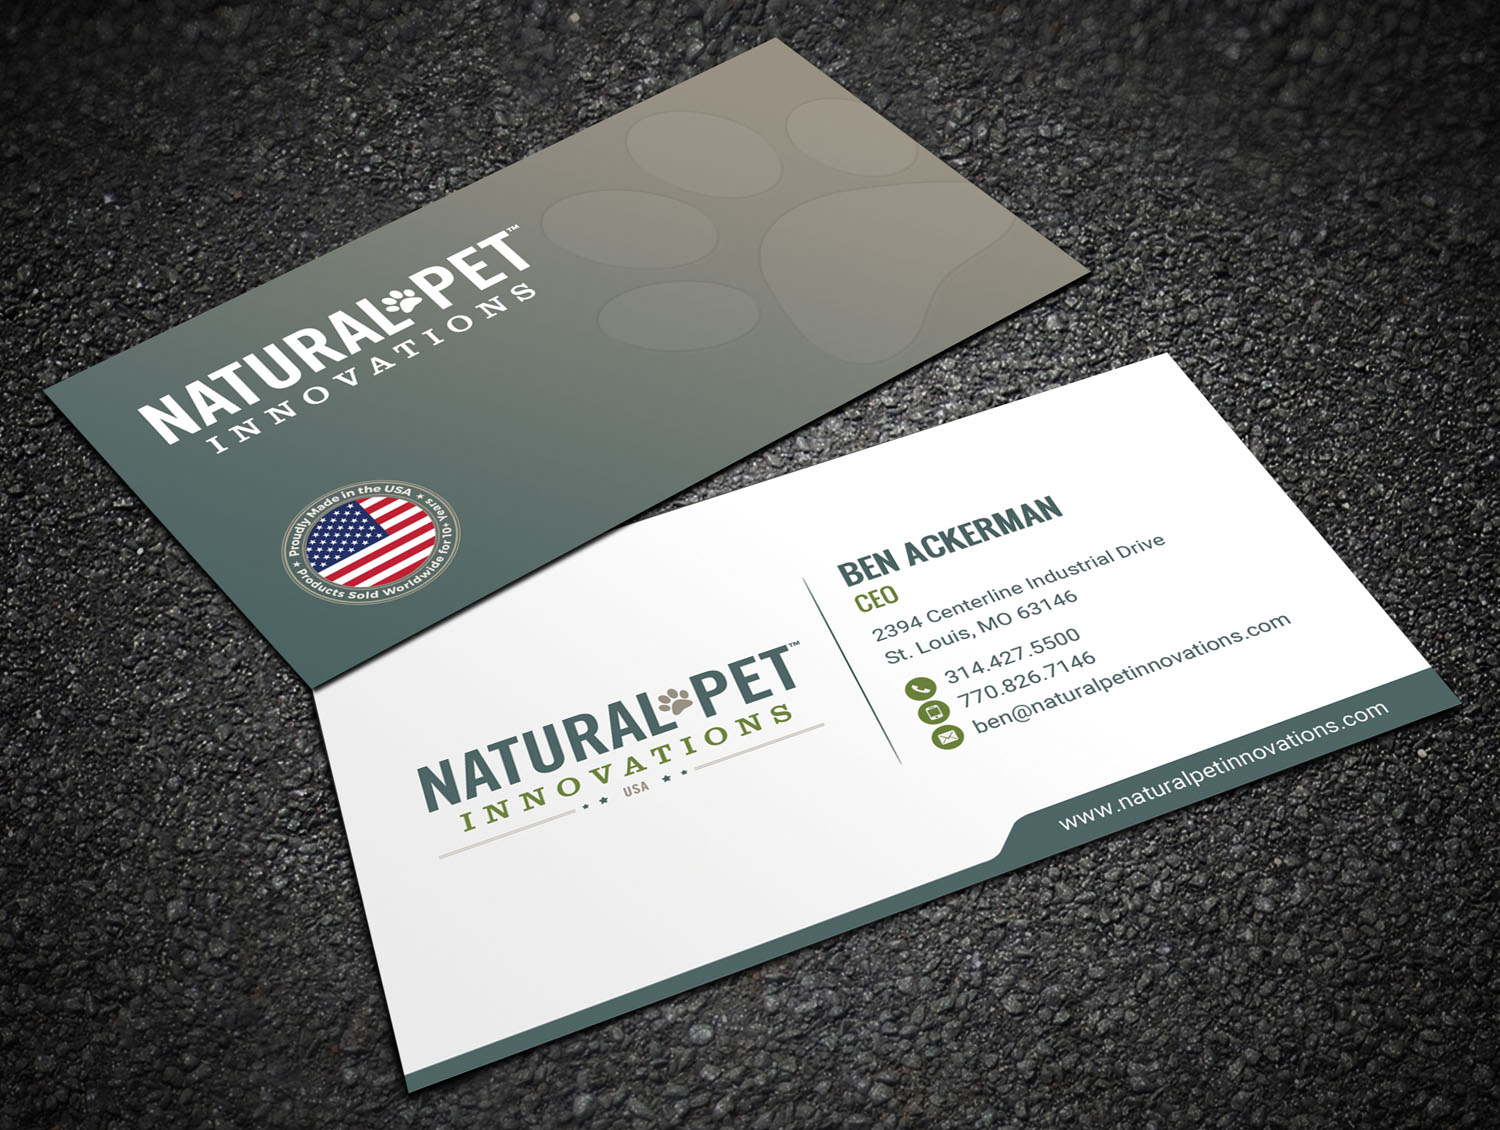 Masculine serious pet business card design for natural pet business card design by sandaruwan for natural pet innovations design 18551192 colourmoves